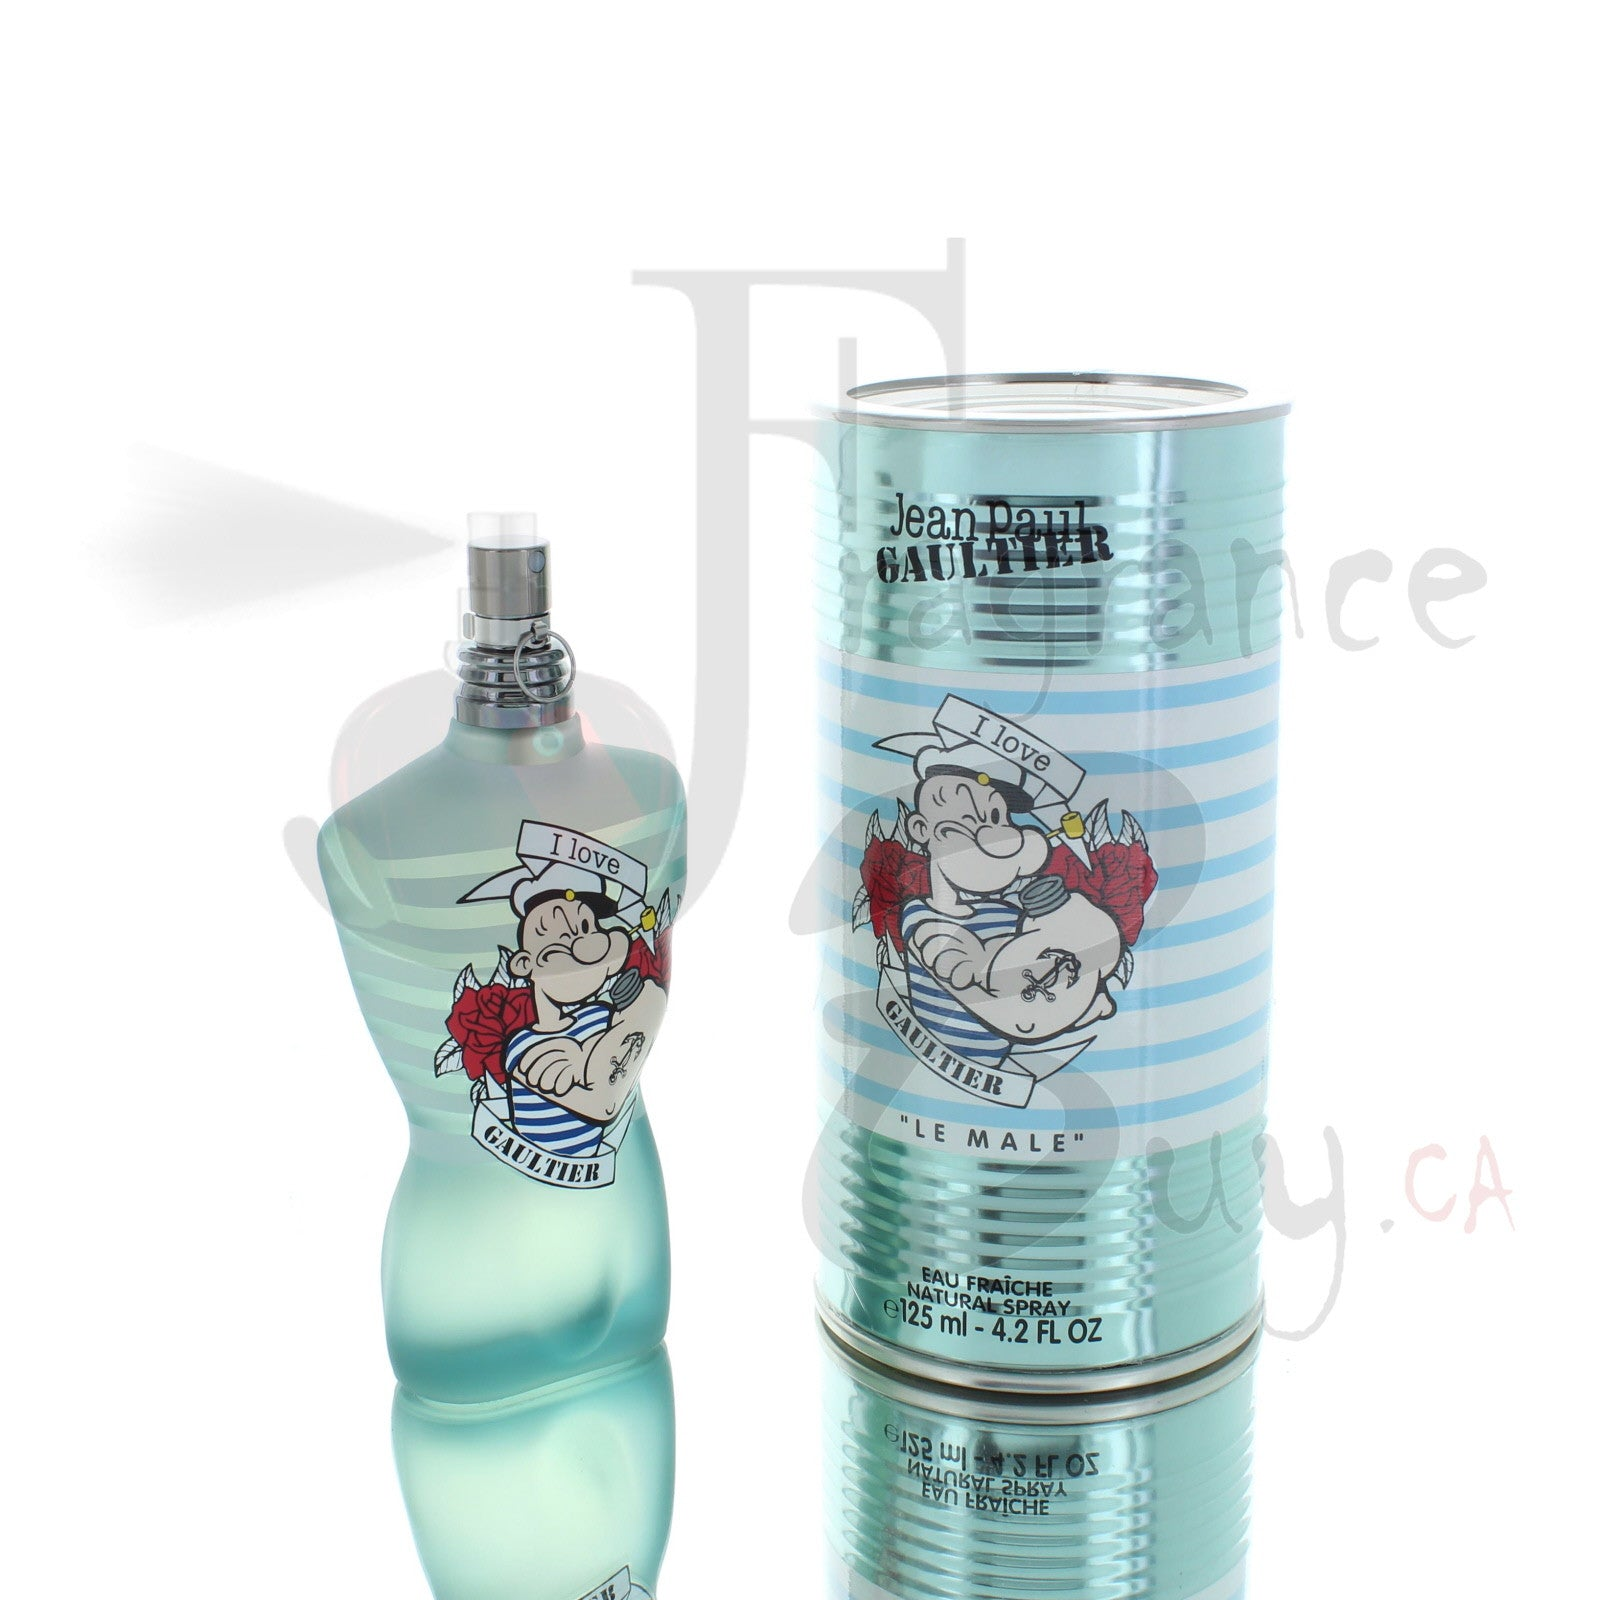 Jean Paul Gaultier Le Male Popeye Eau Fraiche For Man